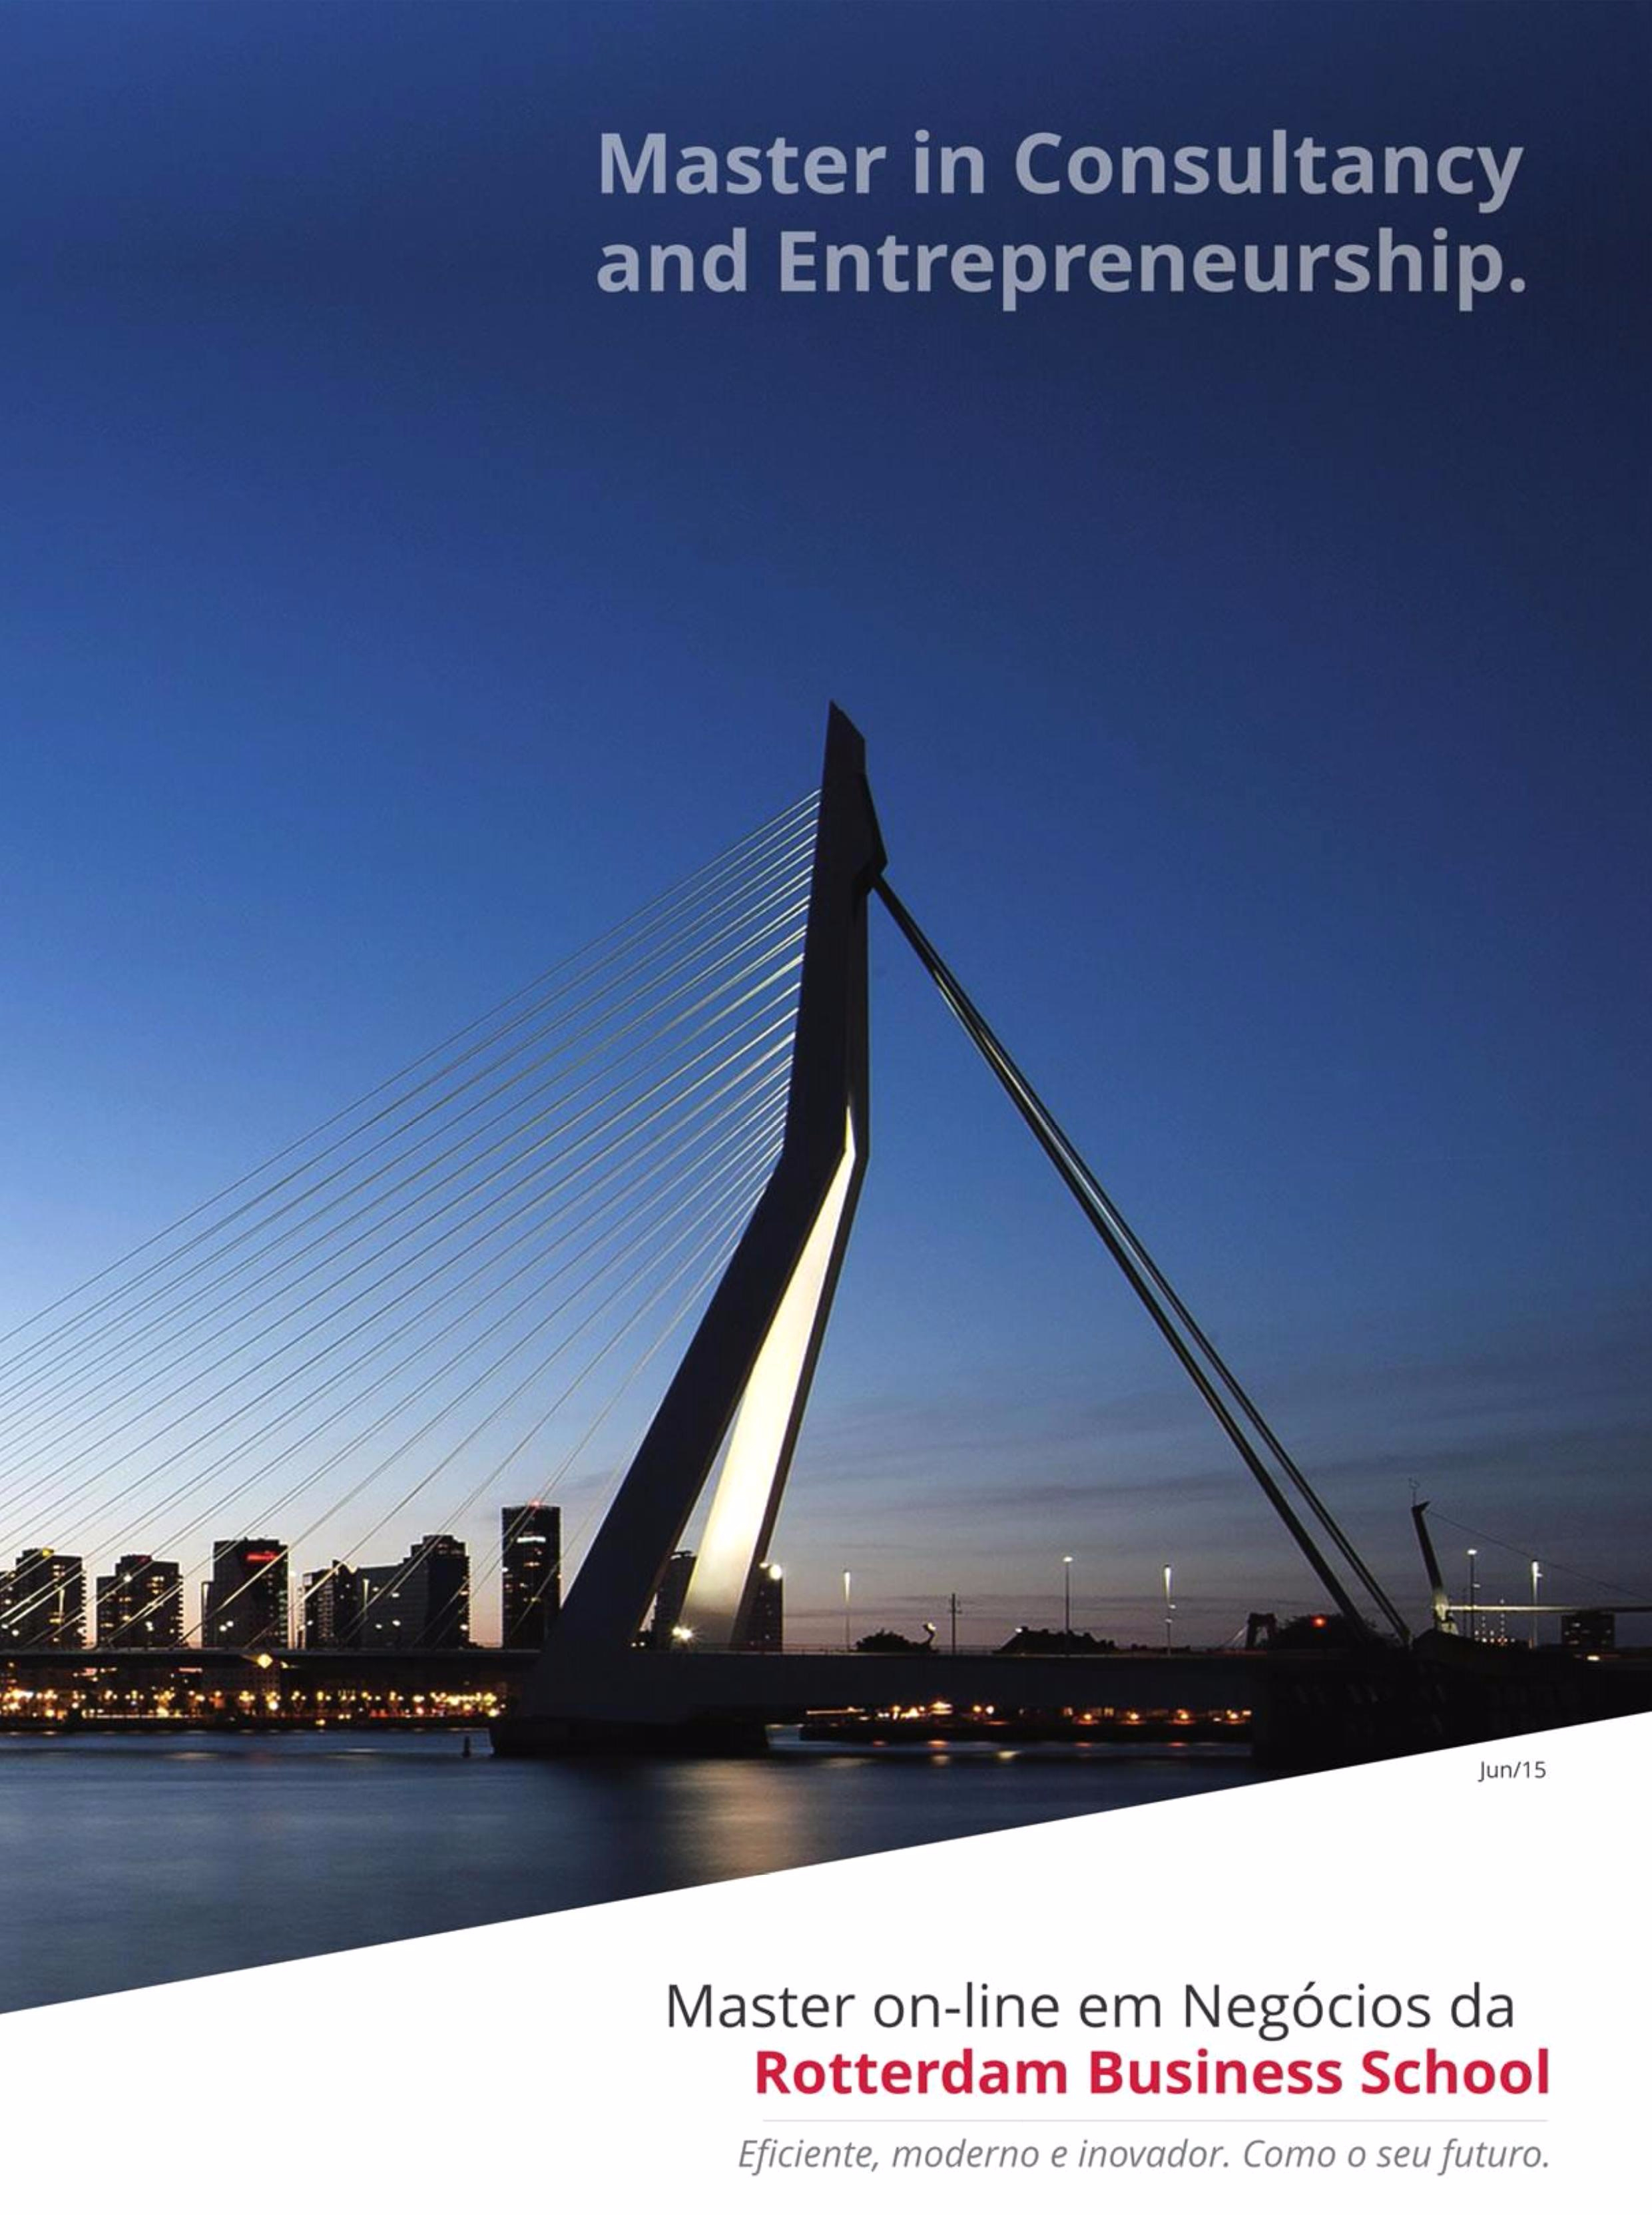 modulos-master-in-consultancy-and-entrepreneurship-rotterdam-business-school_11.jpg